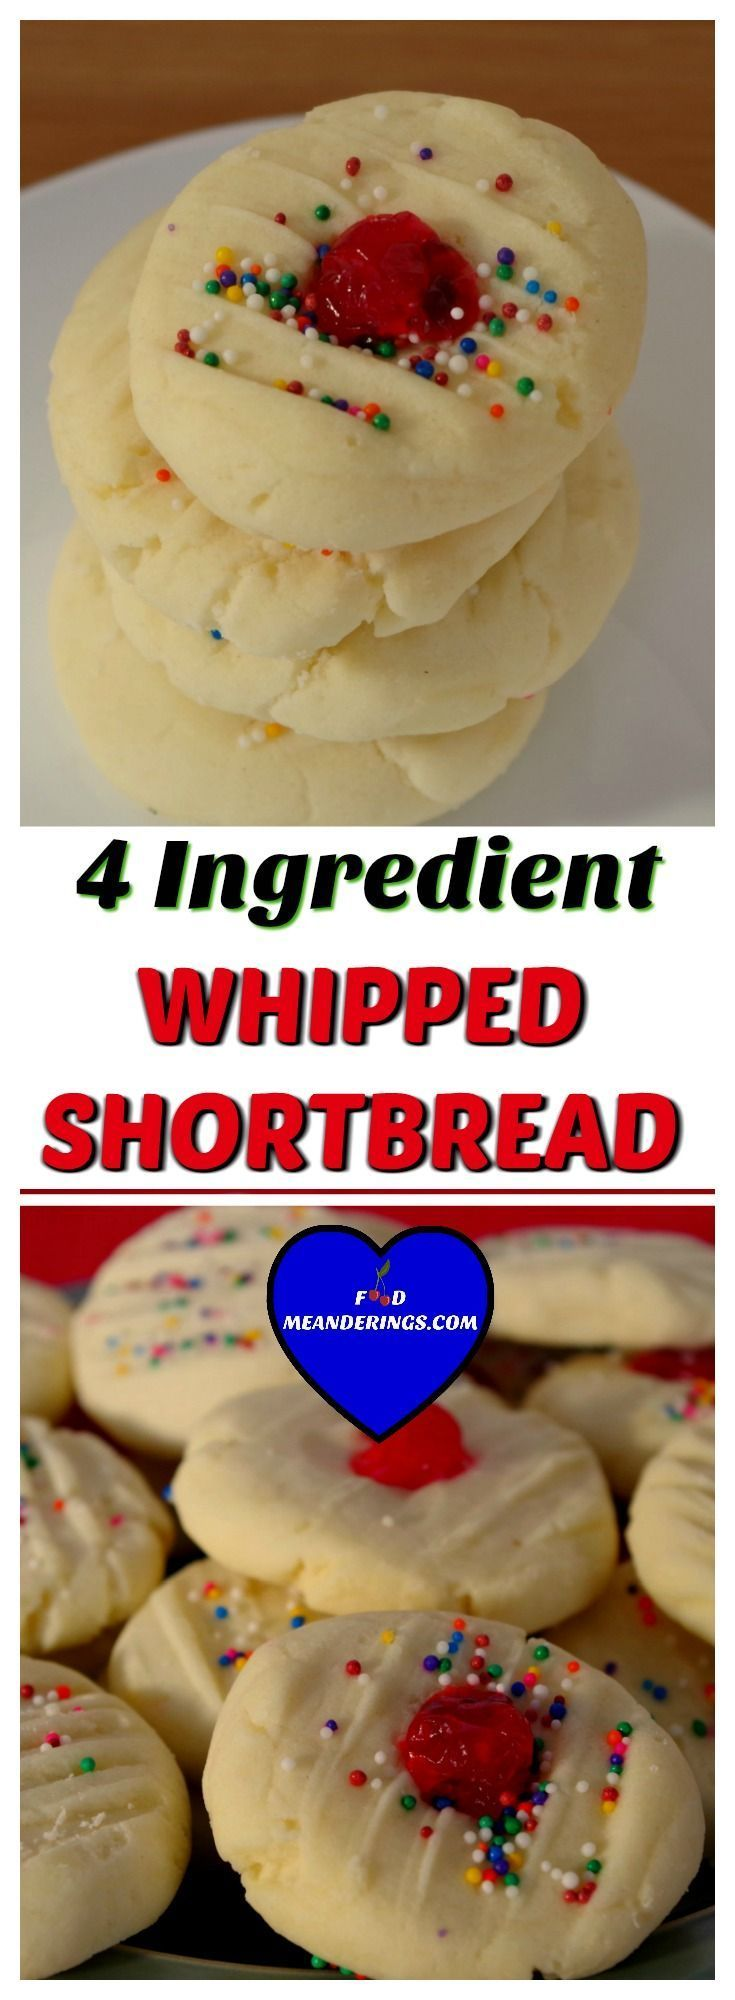 4 ingredient whipped shortbread cookies are amazing, melt-in-your-mouth, quick and easy! #shortbread